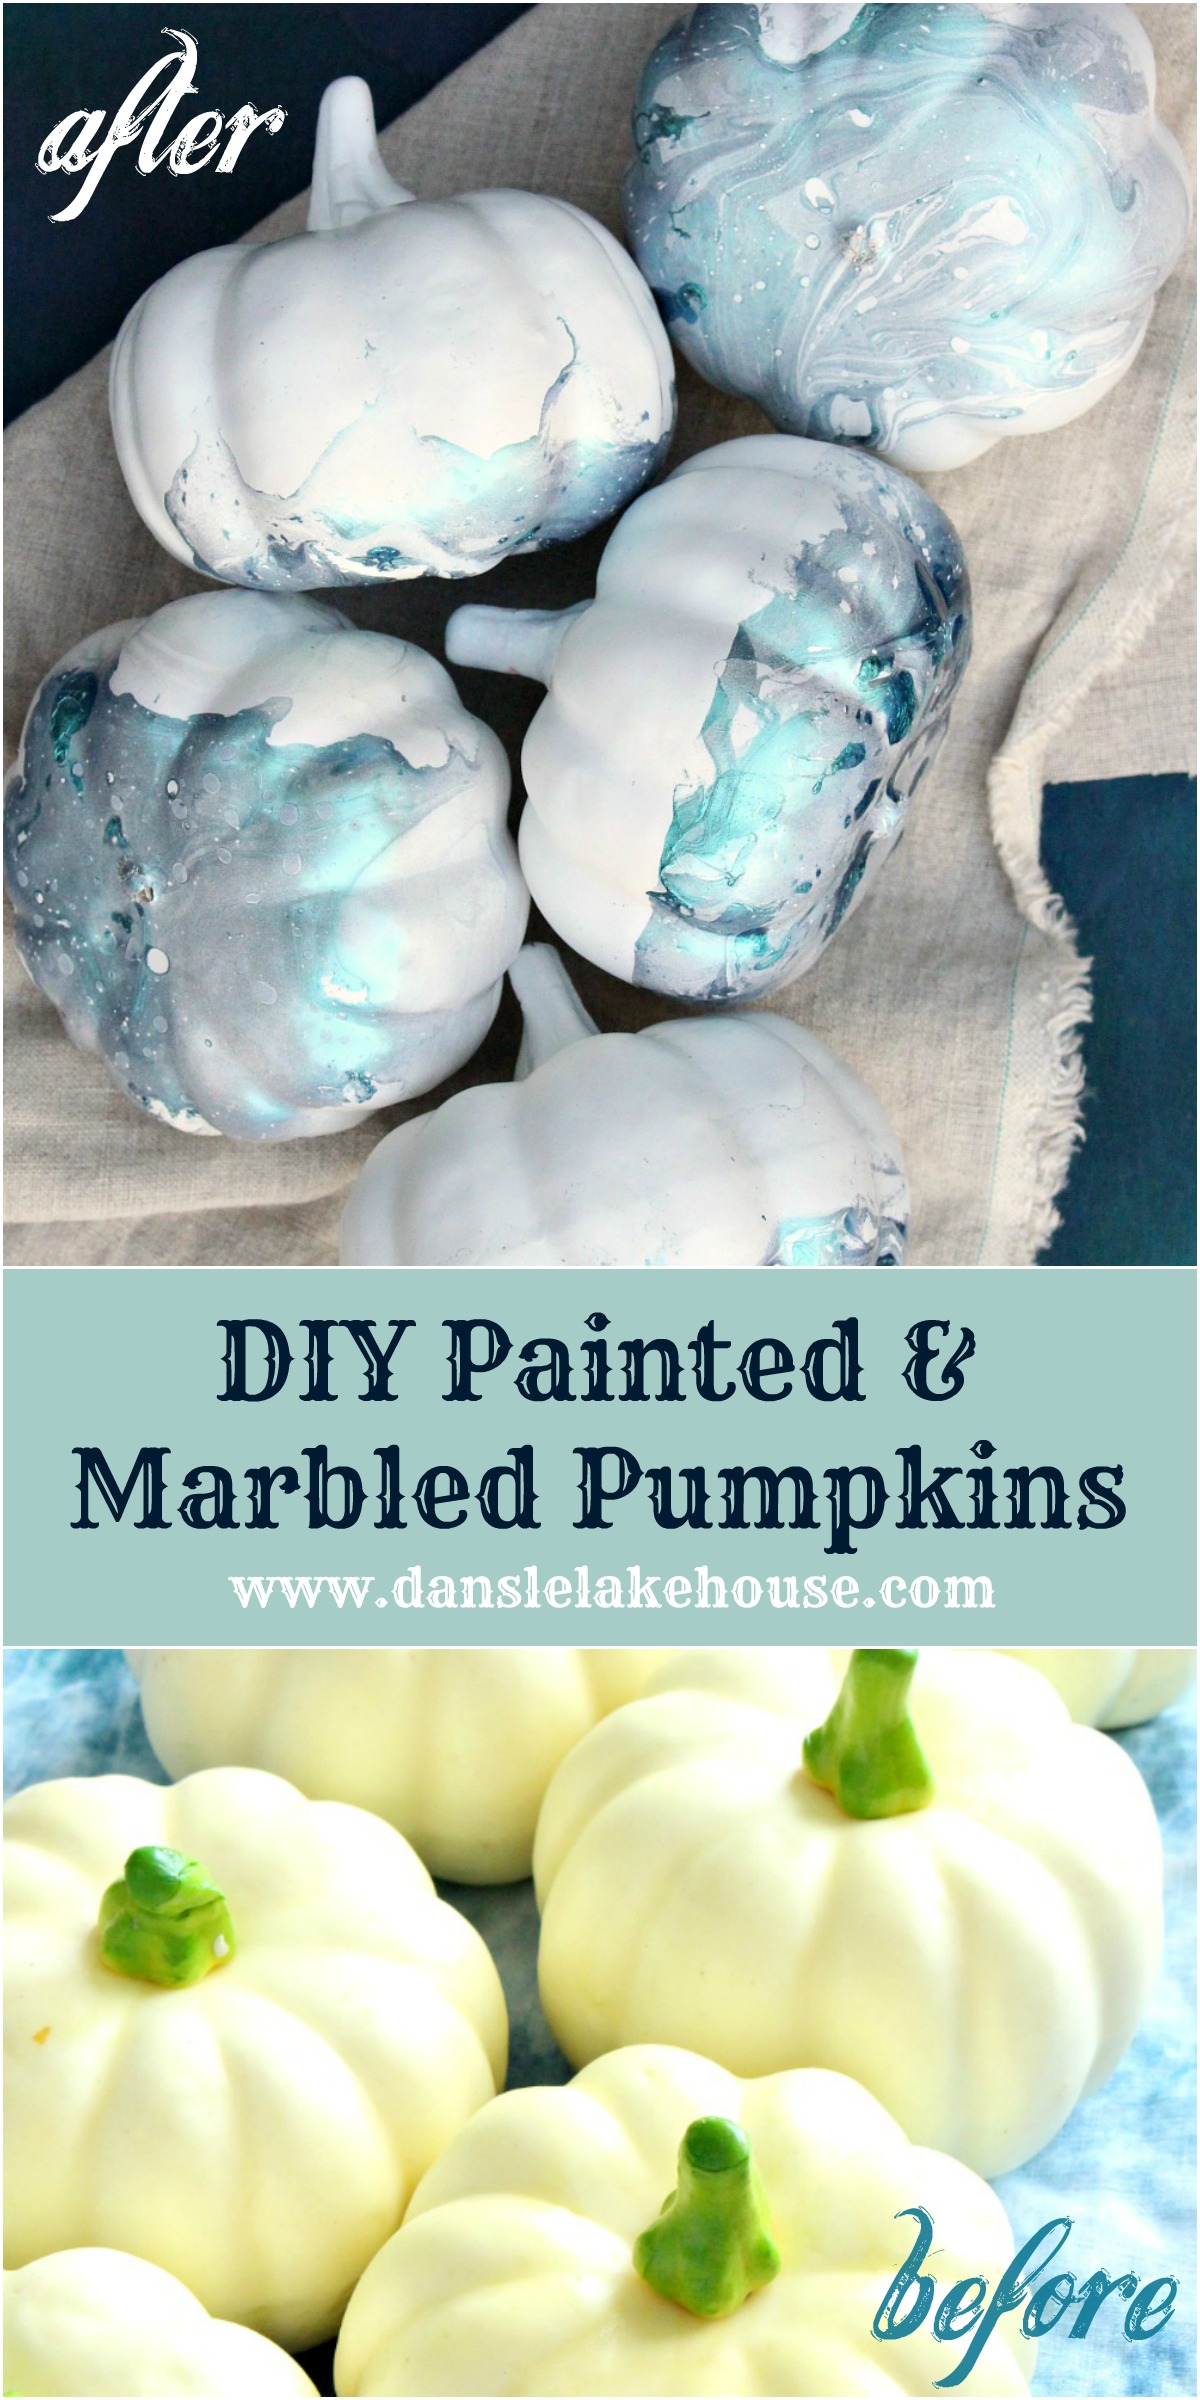 DIY painted and marbled pumpkins